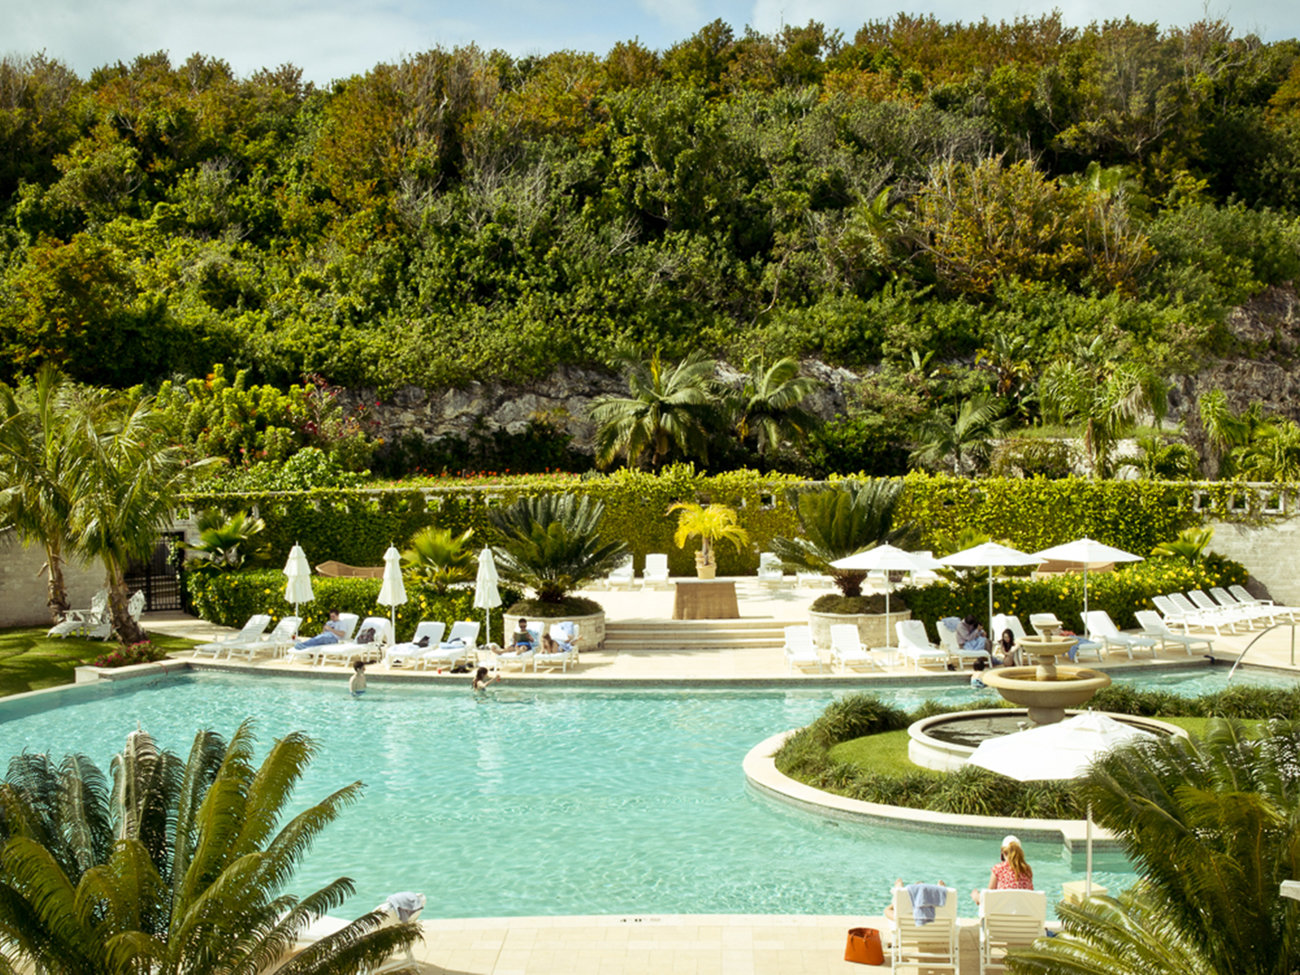 Rosewood Tucker's Point Hotel in Bermuda